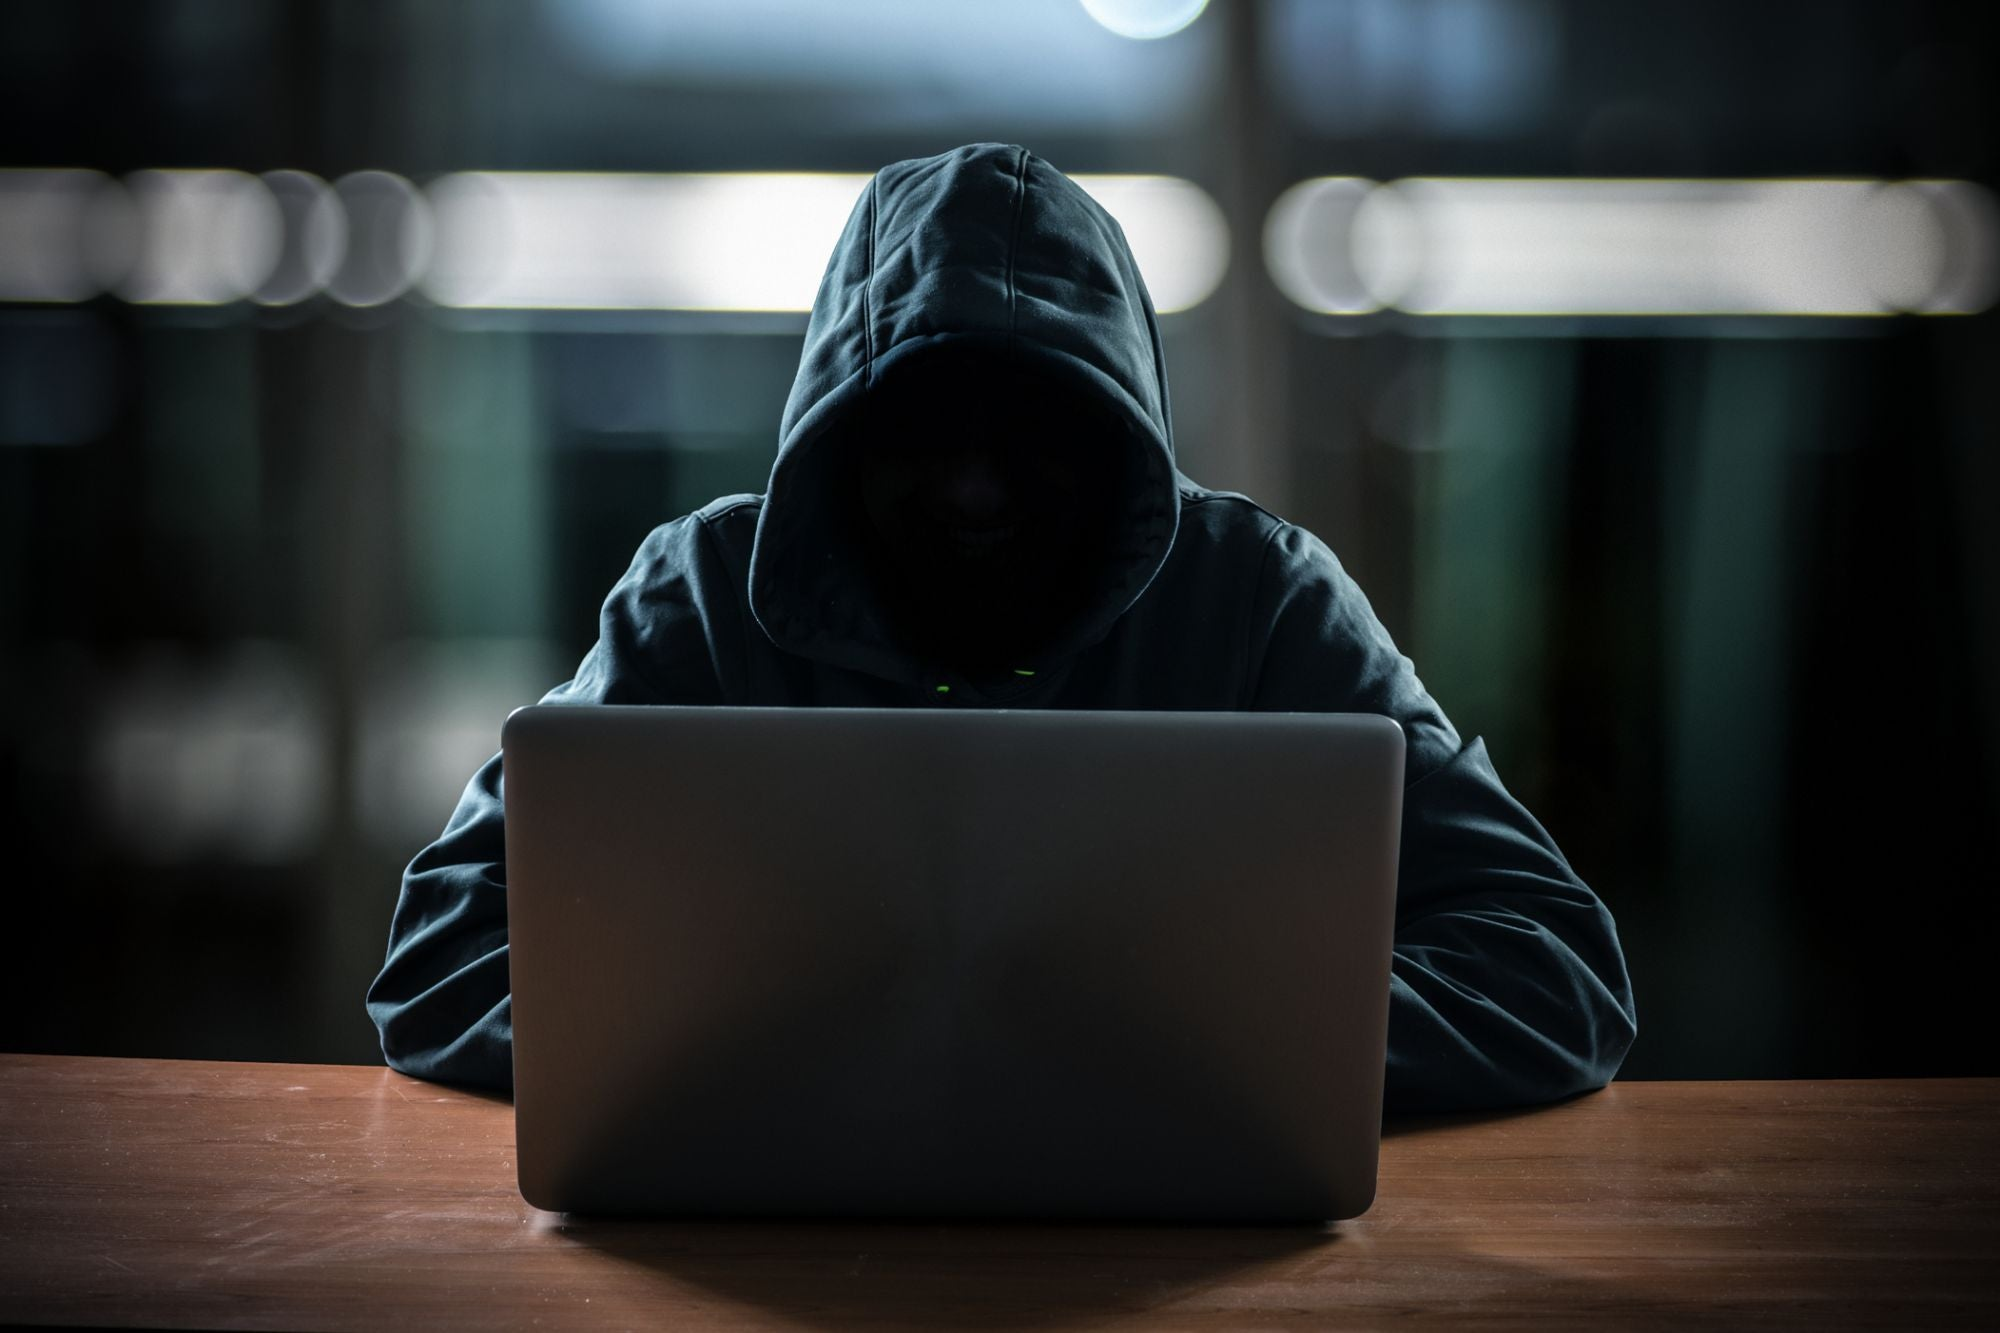 Survey: More Than 8 in 10 Fell Victim to Phishing Attacks in 2018. Here's What to Know About the Practice. (Infographic)